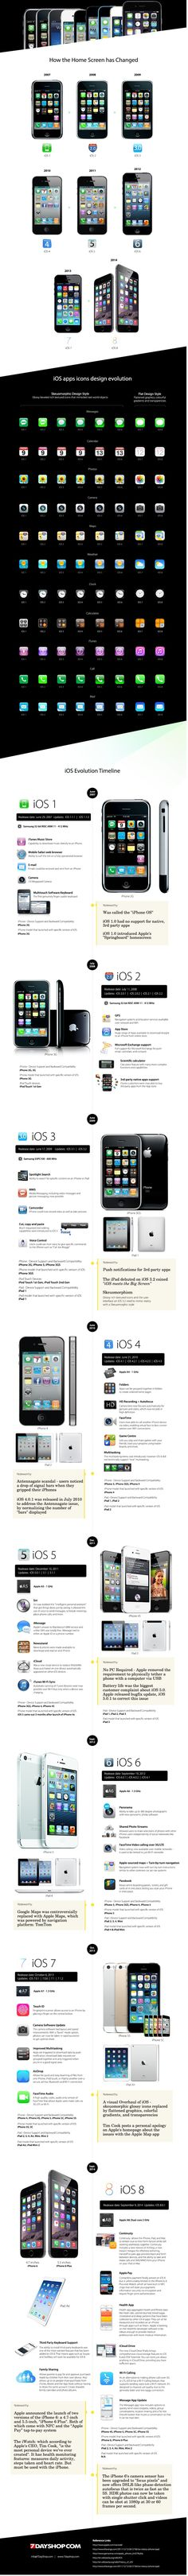 Die Evolution von Apple iOS